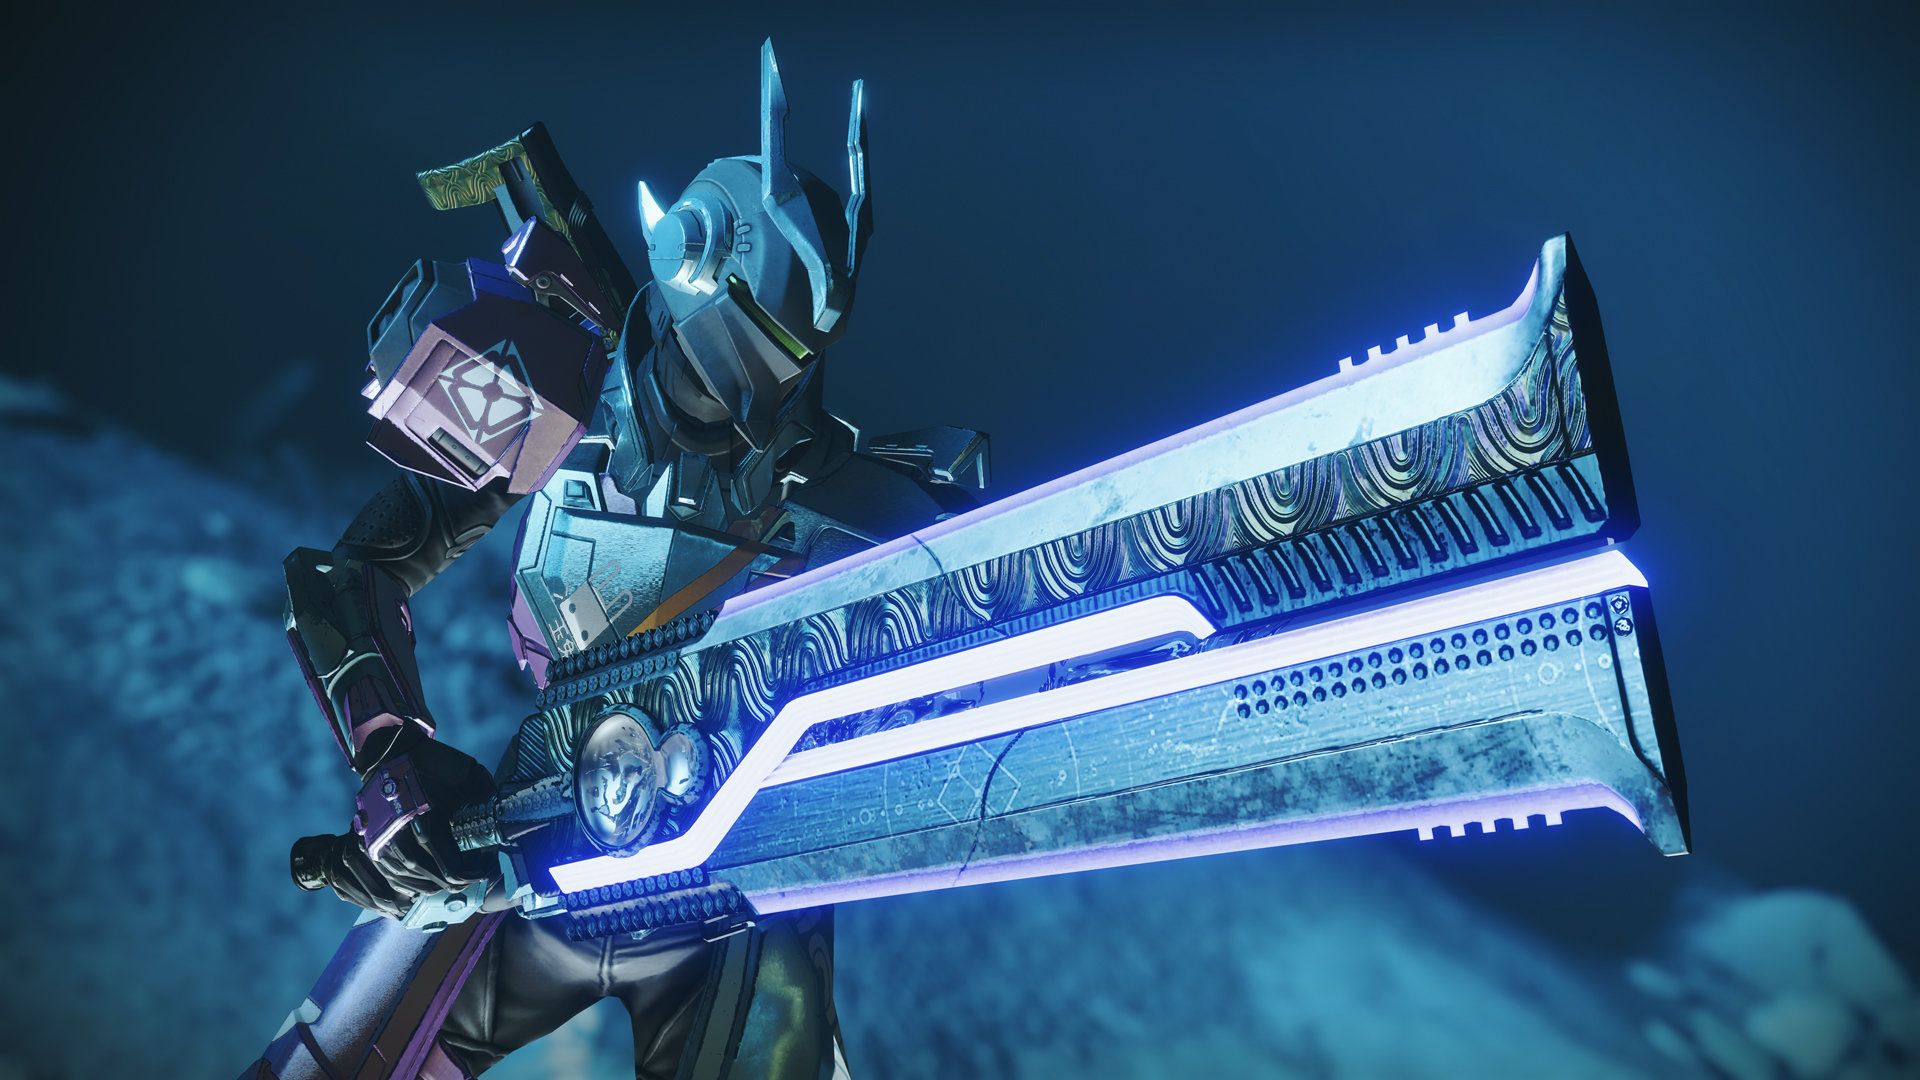 A screenshot from Destiny 2 of a space man with a really really massive sword